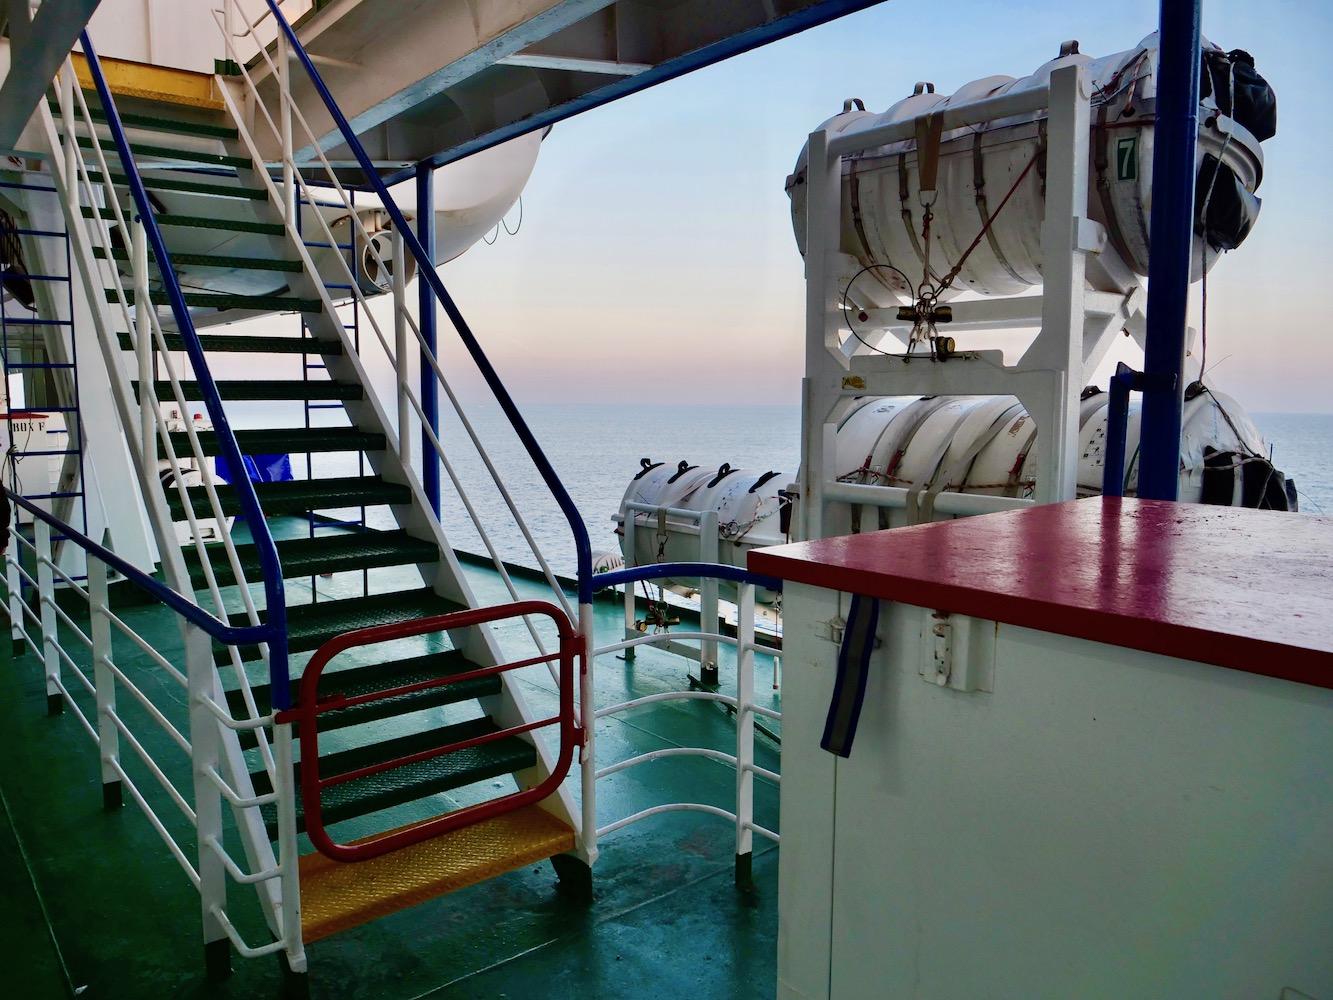 The bright colors of the ferry decks.